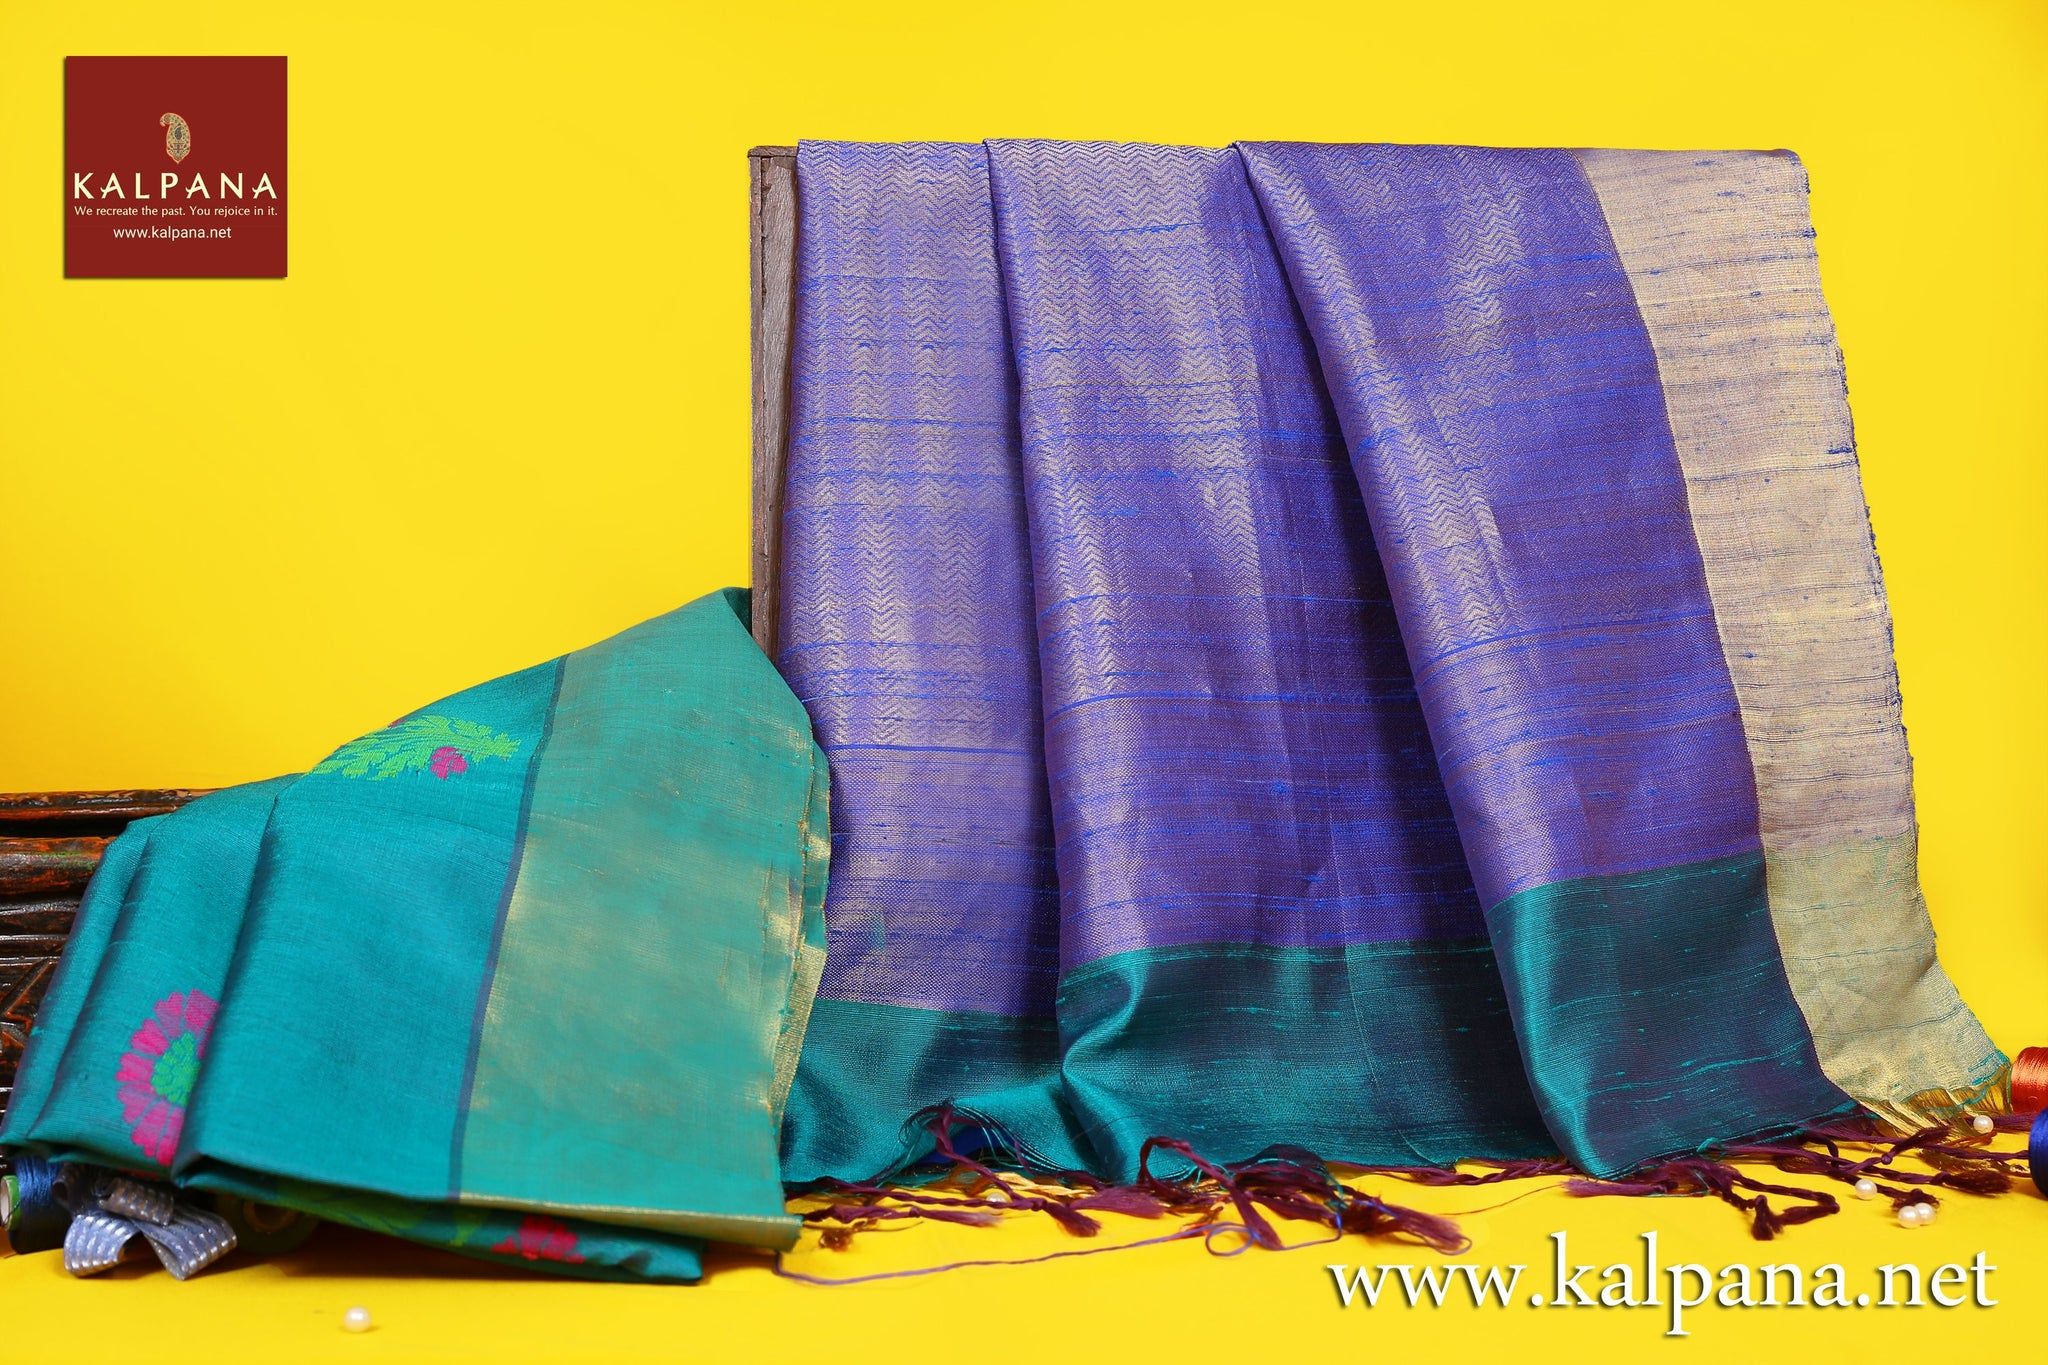 Bangalore Handloom Pure Dupion Saree with All Over Plain and Woven Zari Border. The Palla is  Woven Zari. It comes with Contrast Colored Plain Unstitched Blouse with Zari Border. Perfect for Multi Occasion Wear.  Recommended for Autumn & Winter season(s). Dry Clean Only